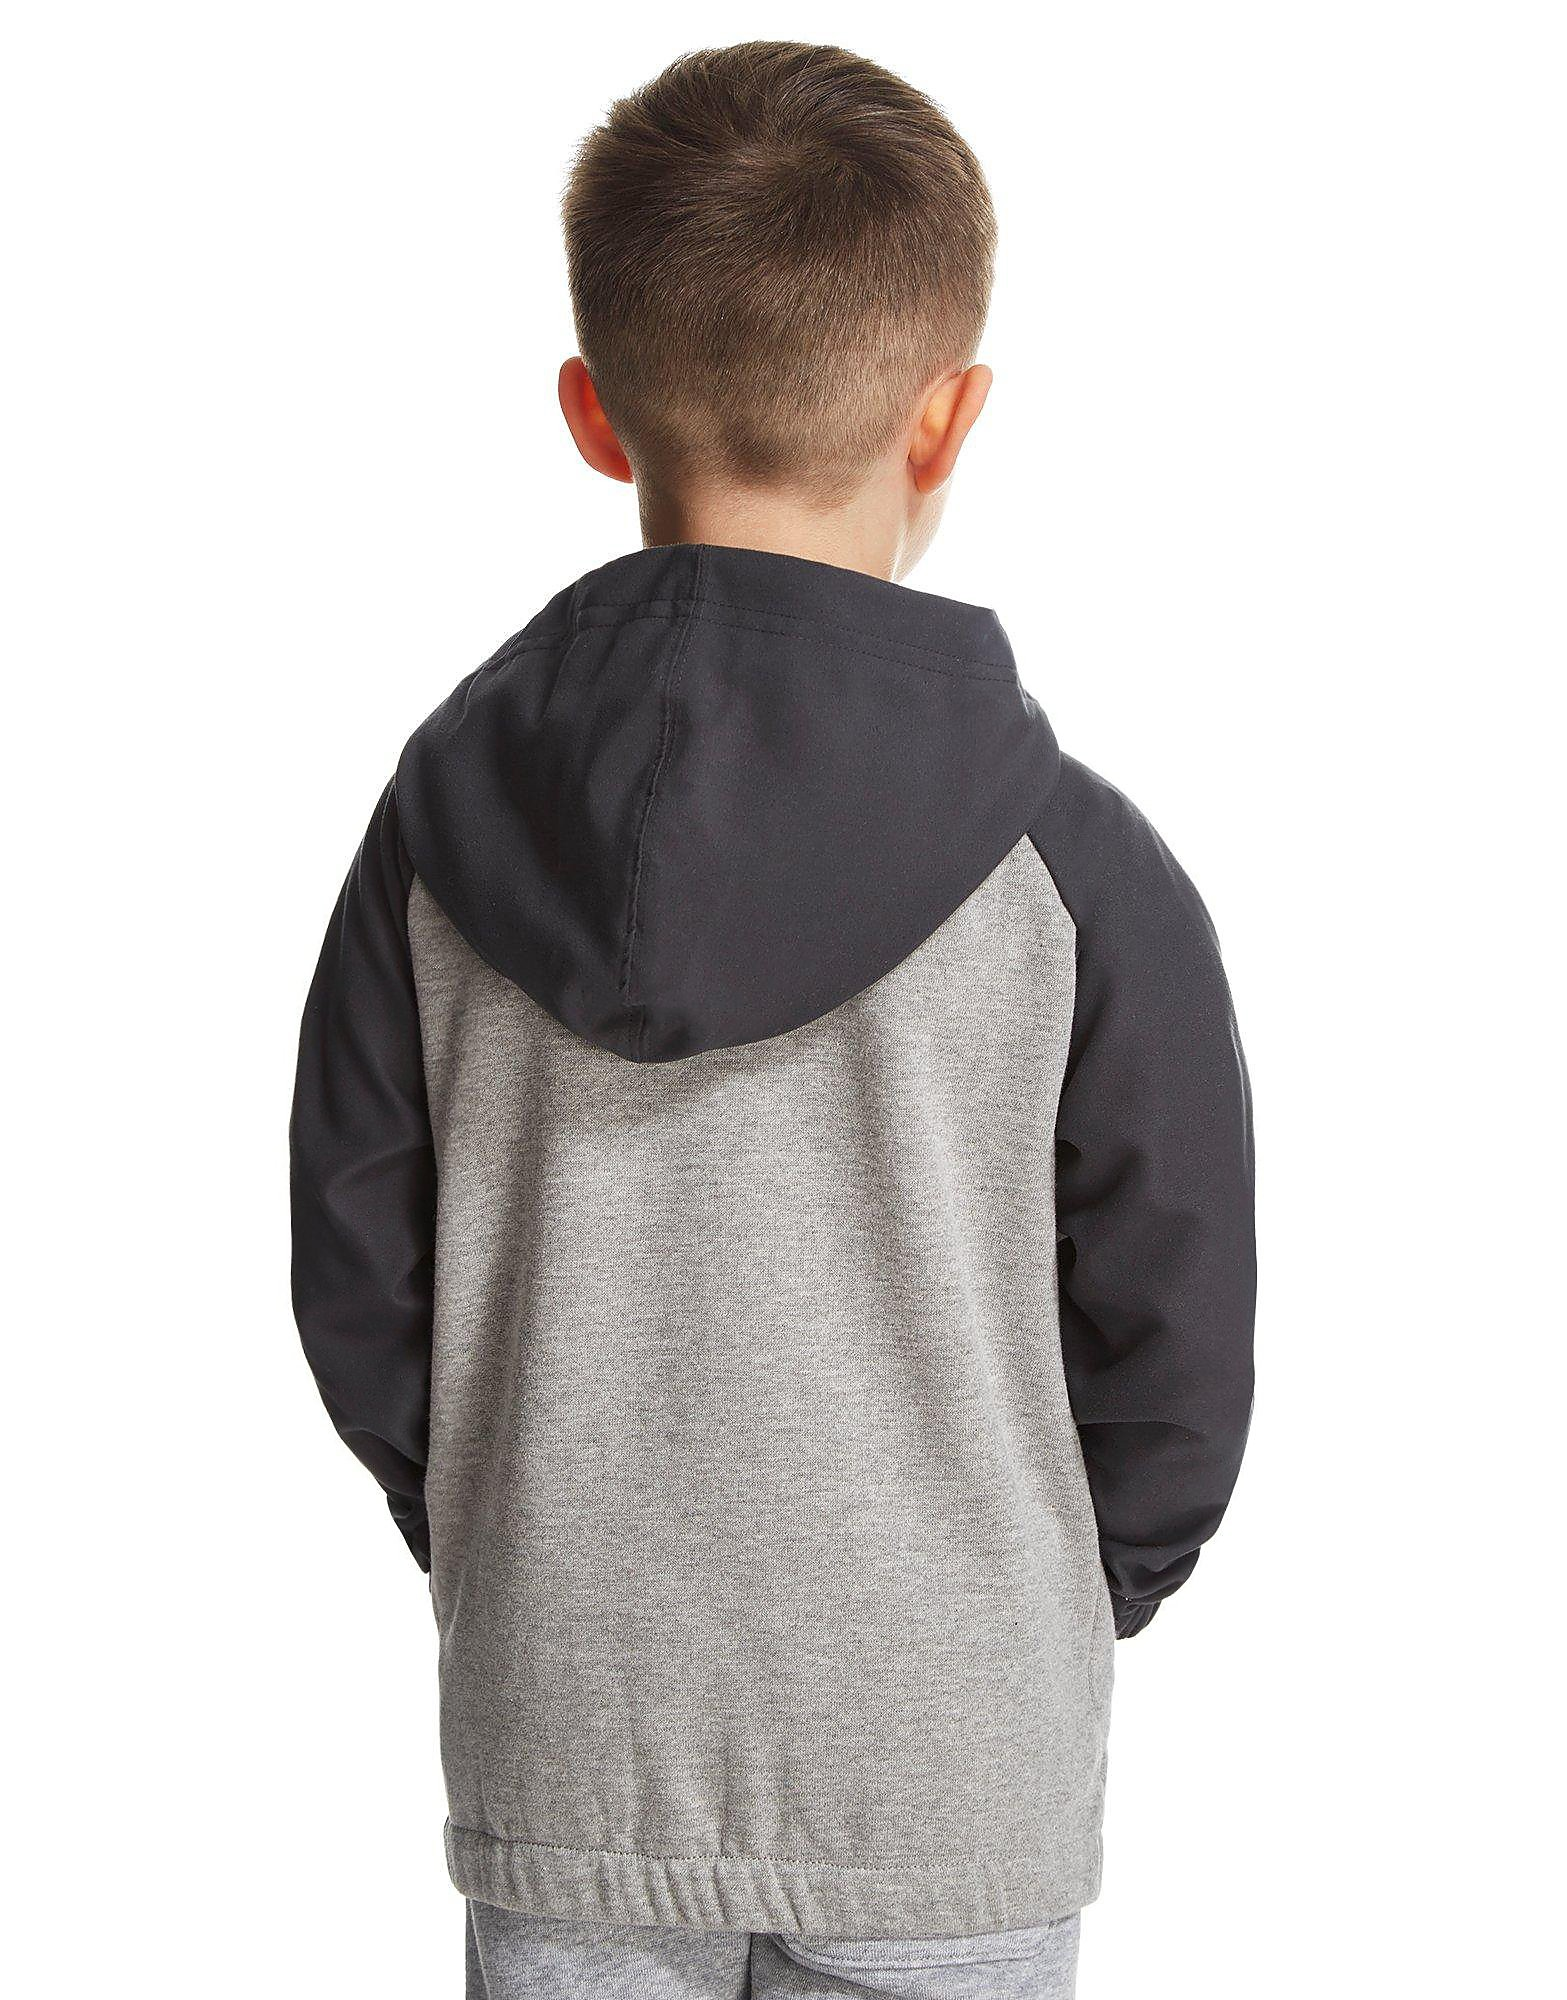 Converse Overlay Full Zip Hoody Children